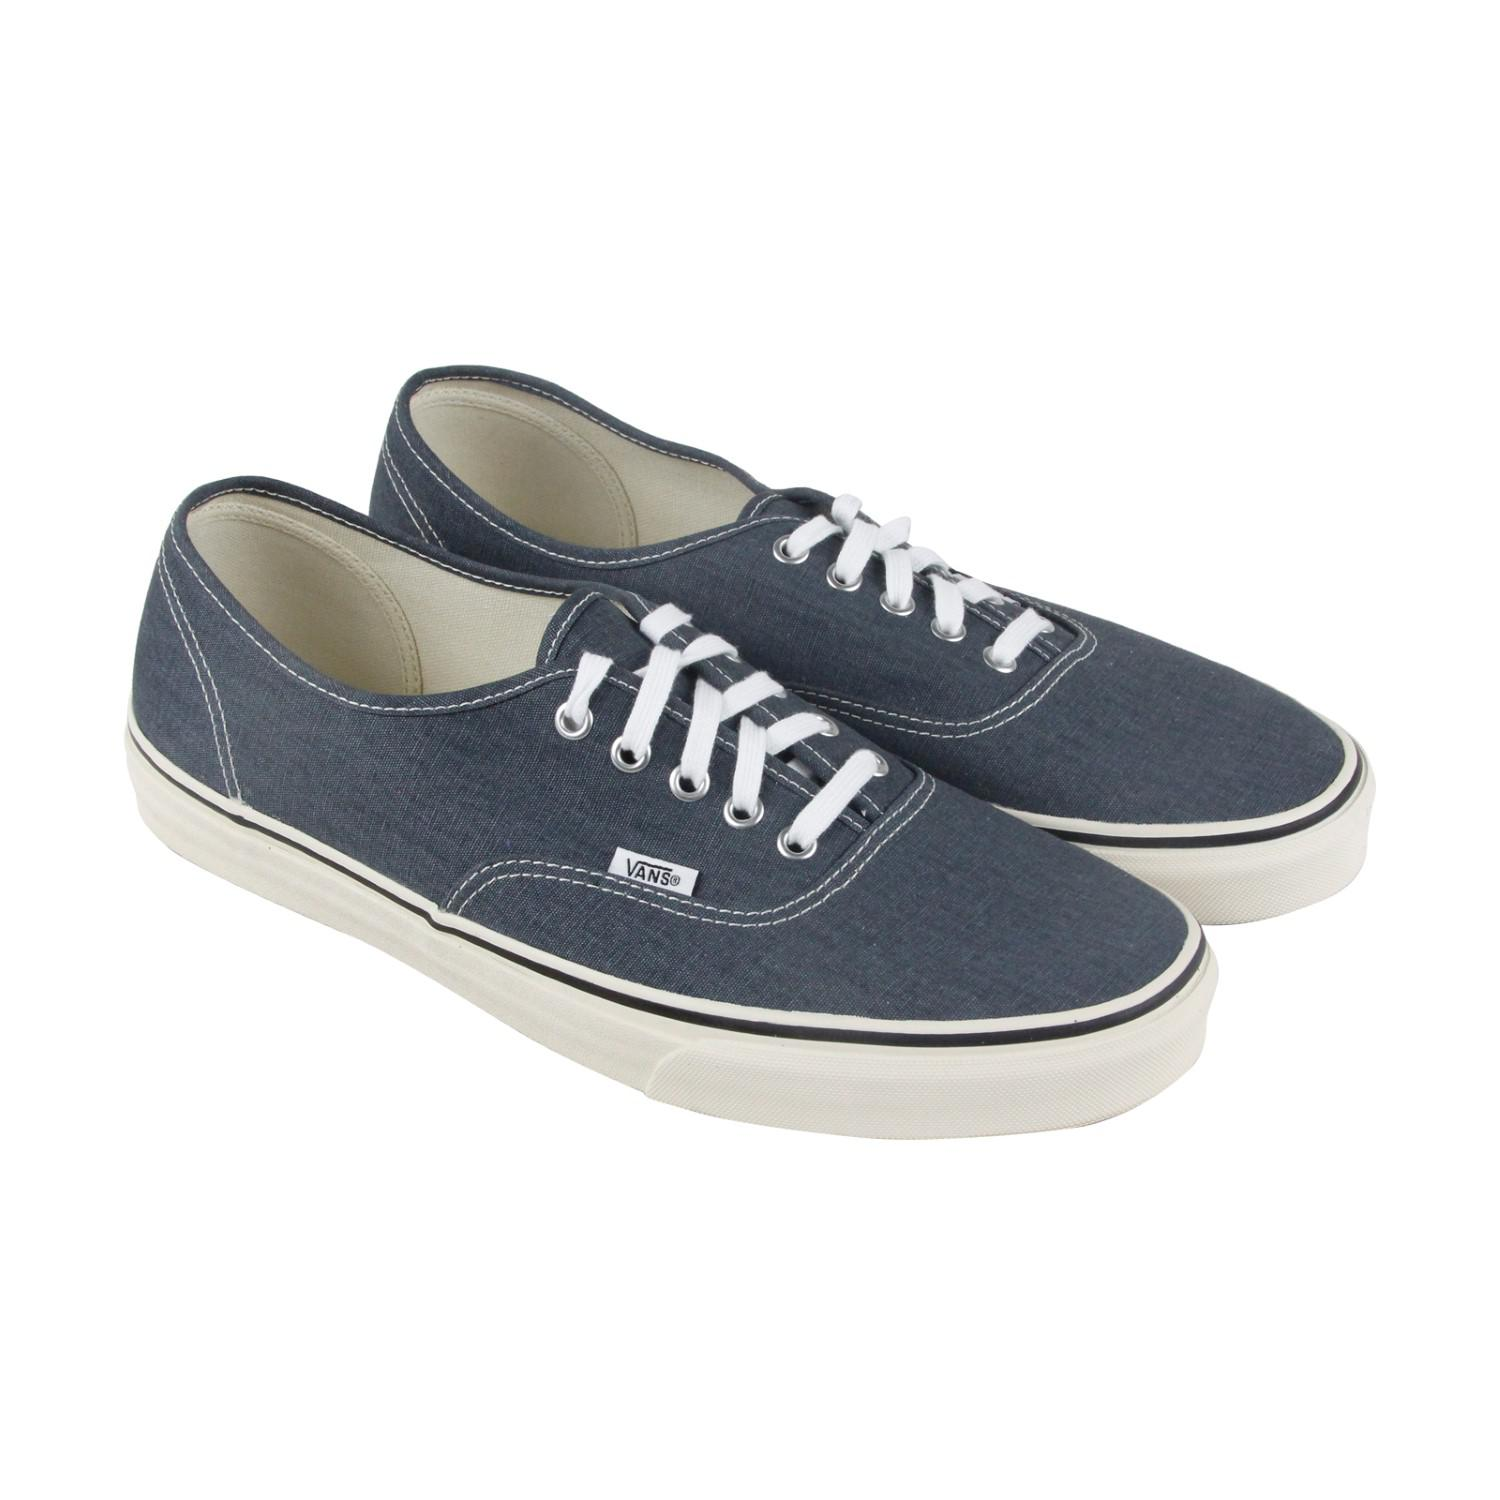 Lyst - Vans Authentic Vintage Navy Turtledove Lace Up Sneakers in ... a72988fafeeb